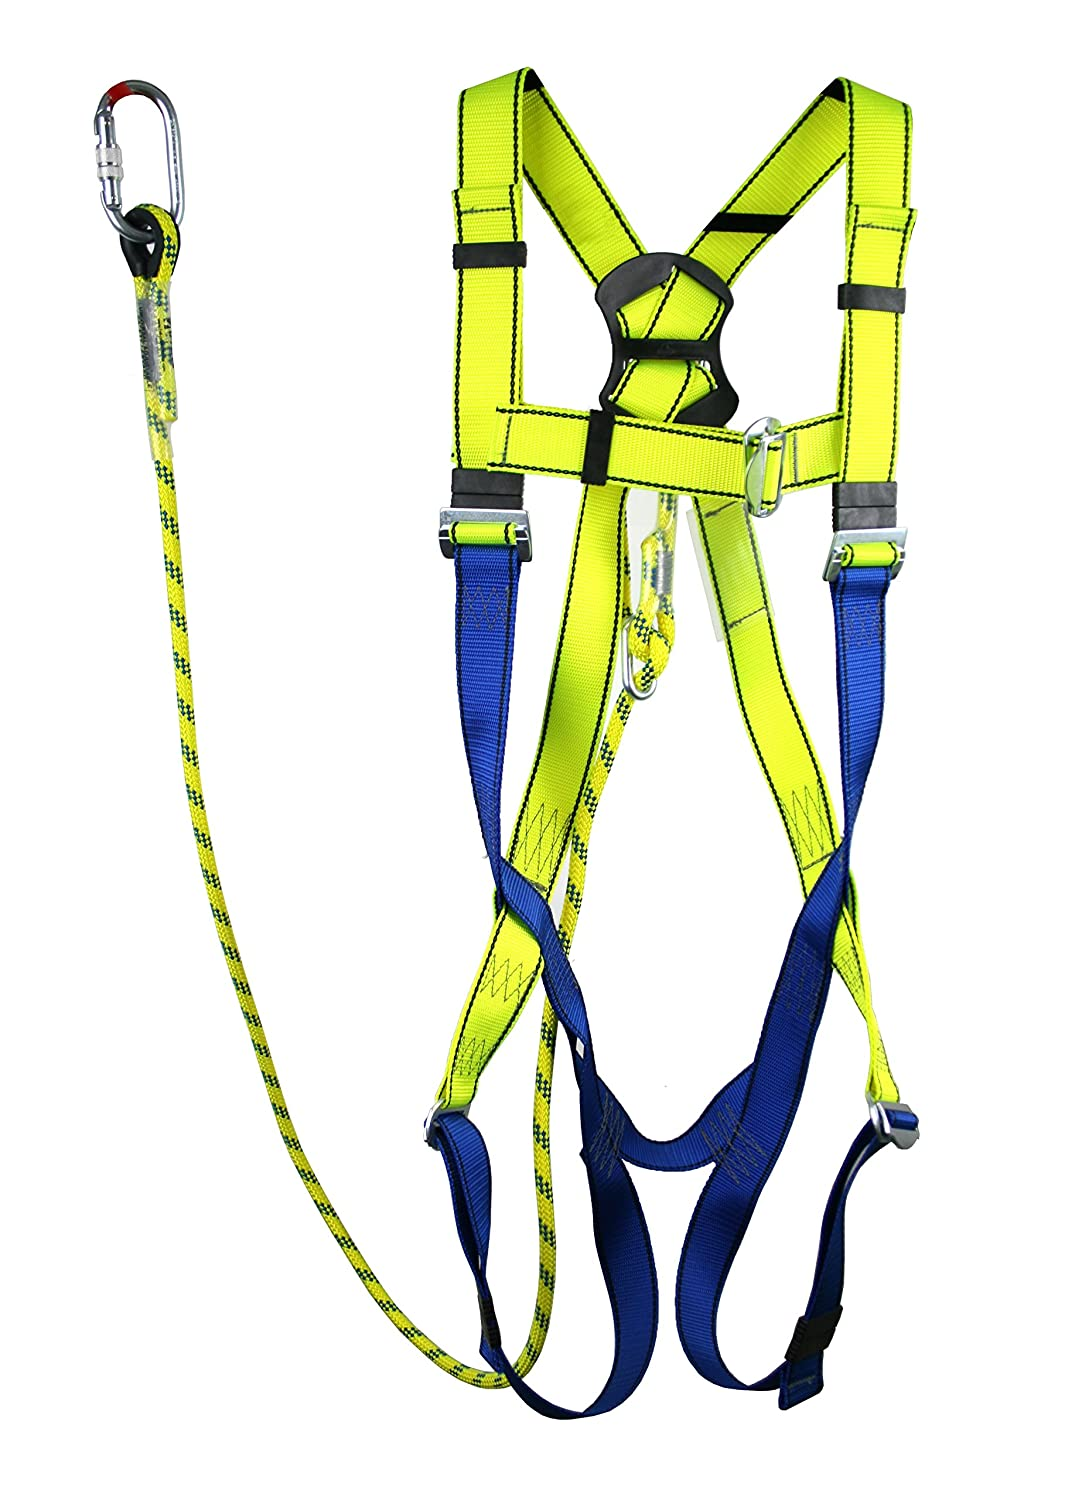 Full Body Height Safety Fall Arrest Restraint Harness Kit for Access Platform Cherry Picker Restraint, Fully Adjustable (M-XL) SafetyLiftinGear